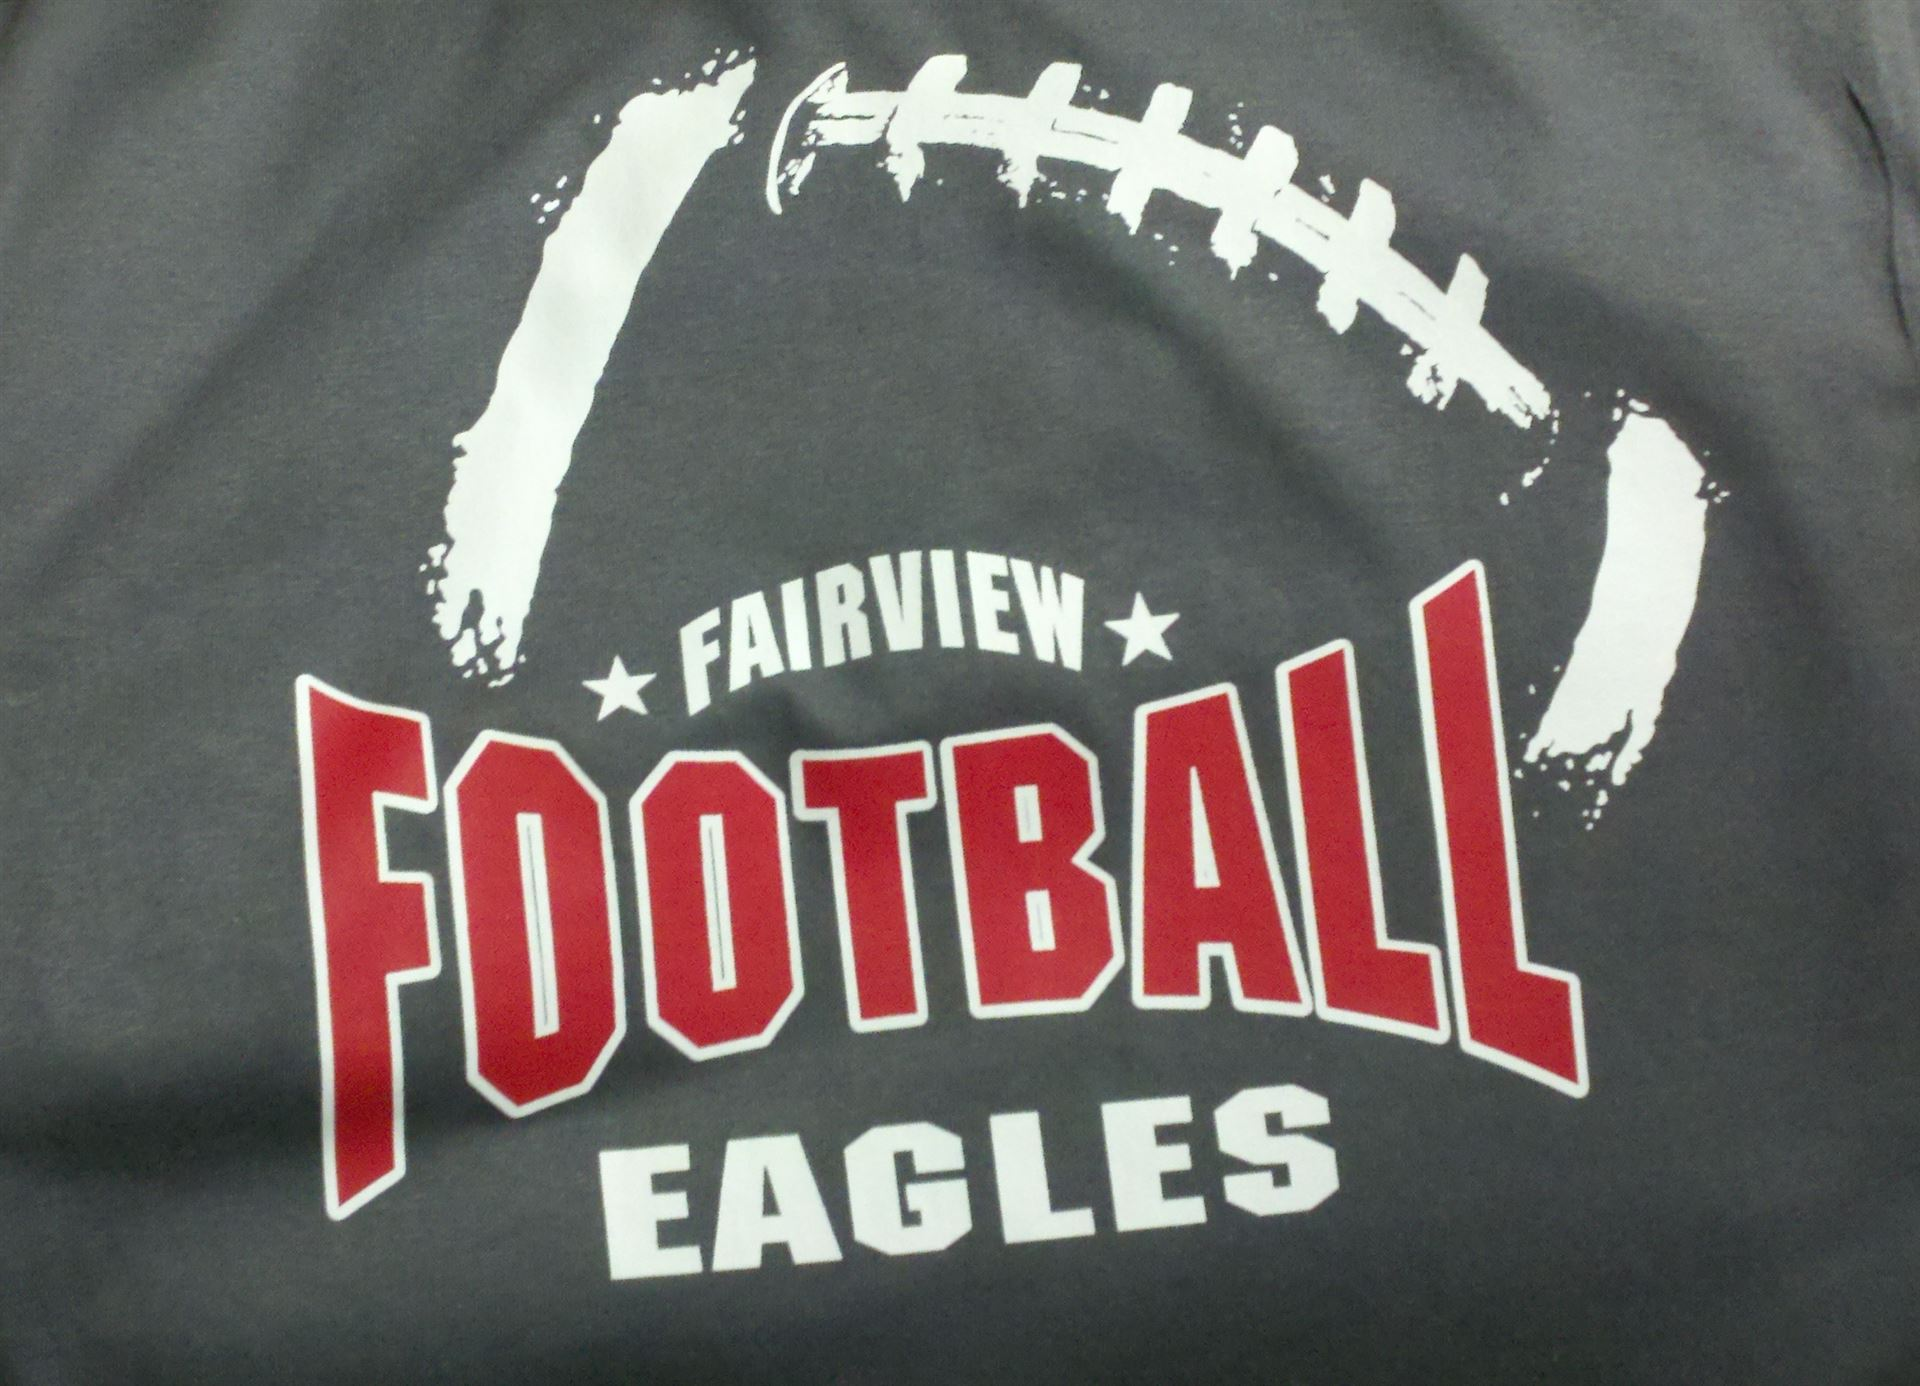 Fairview shirt design 44